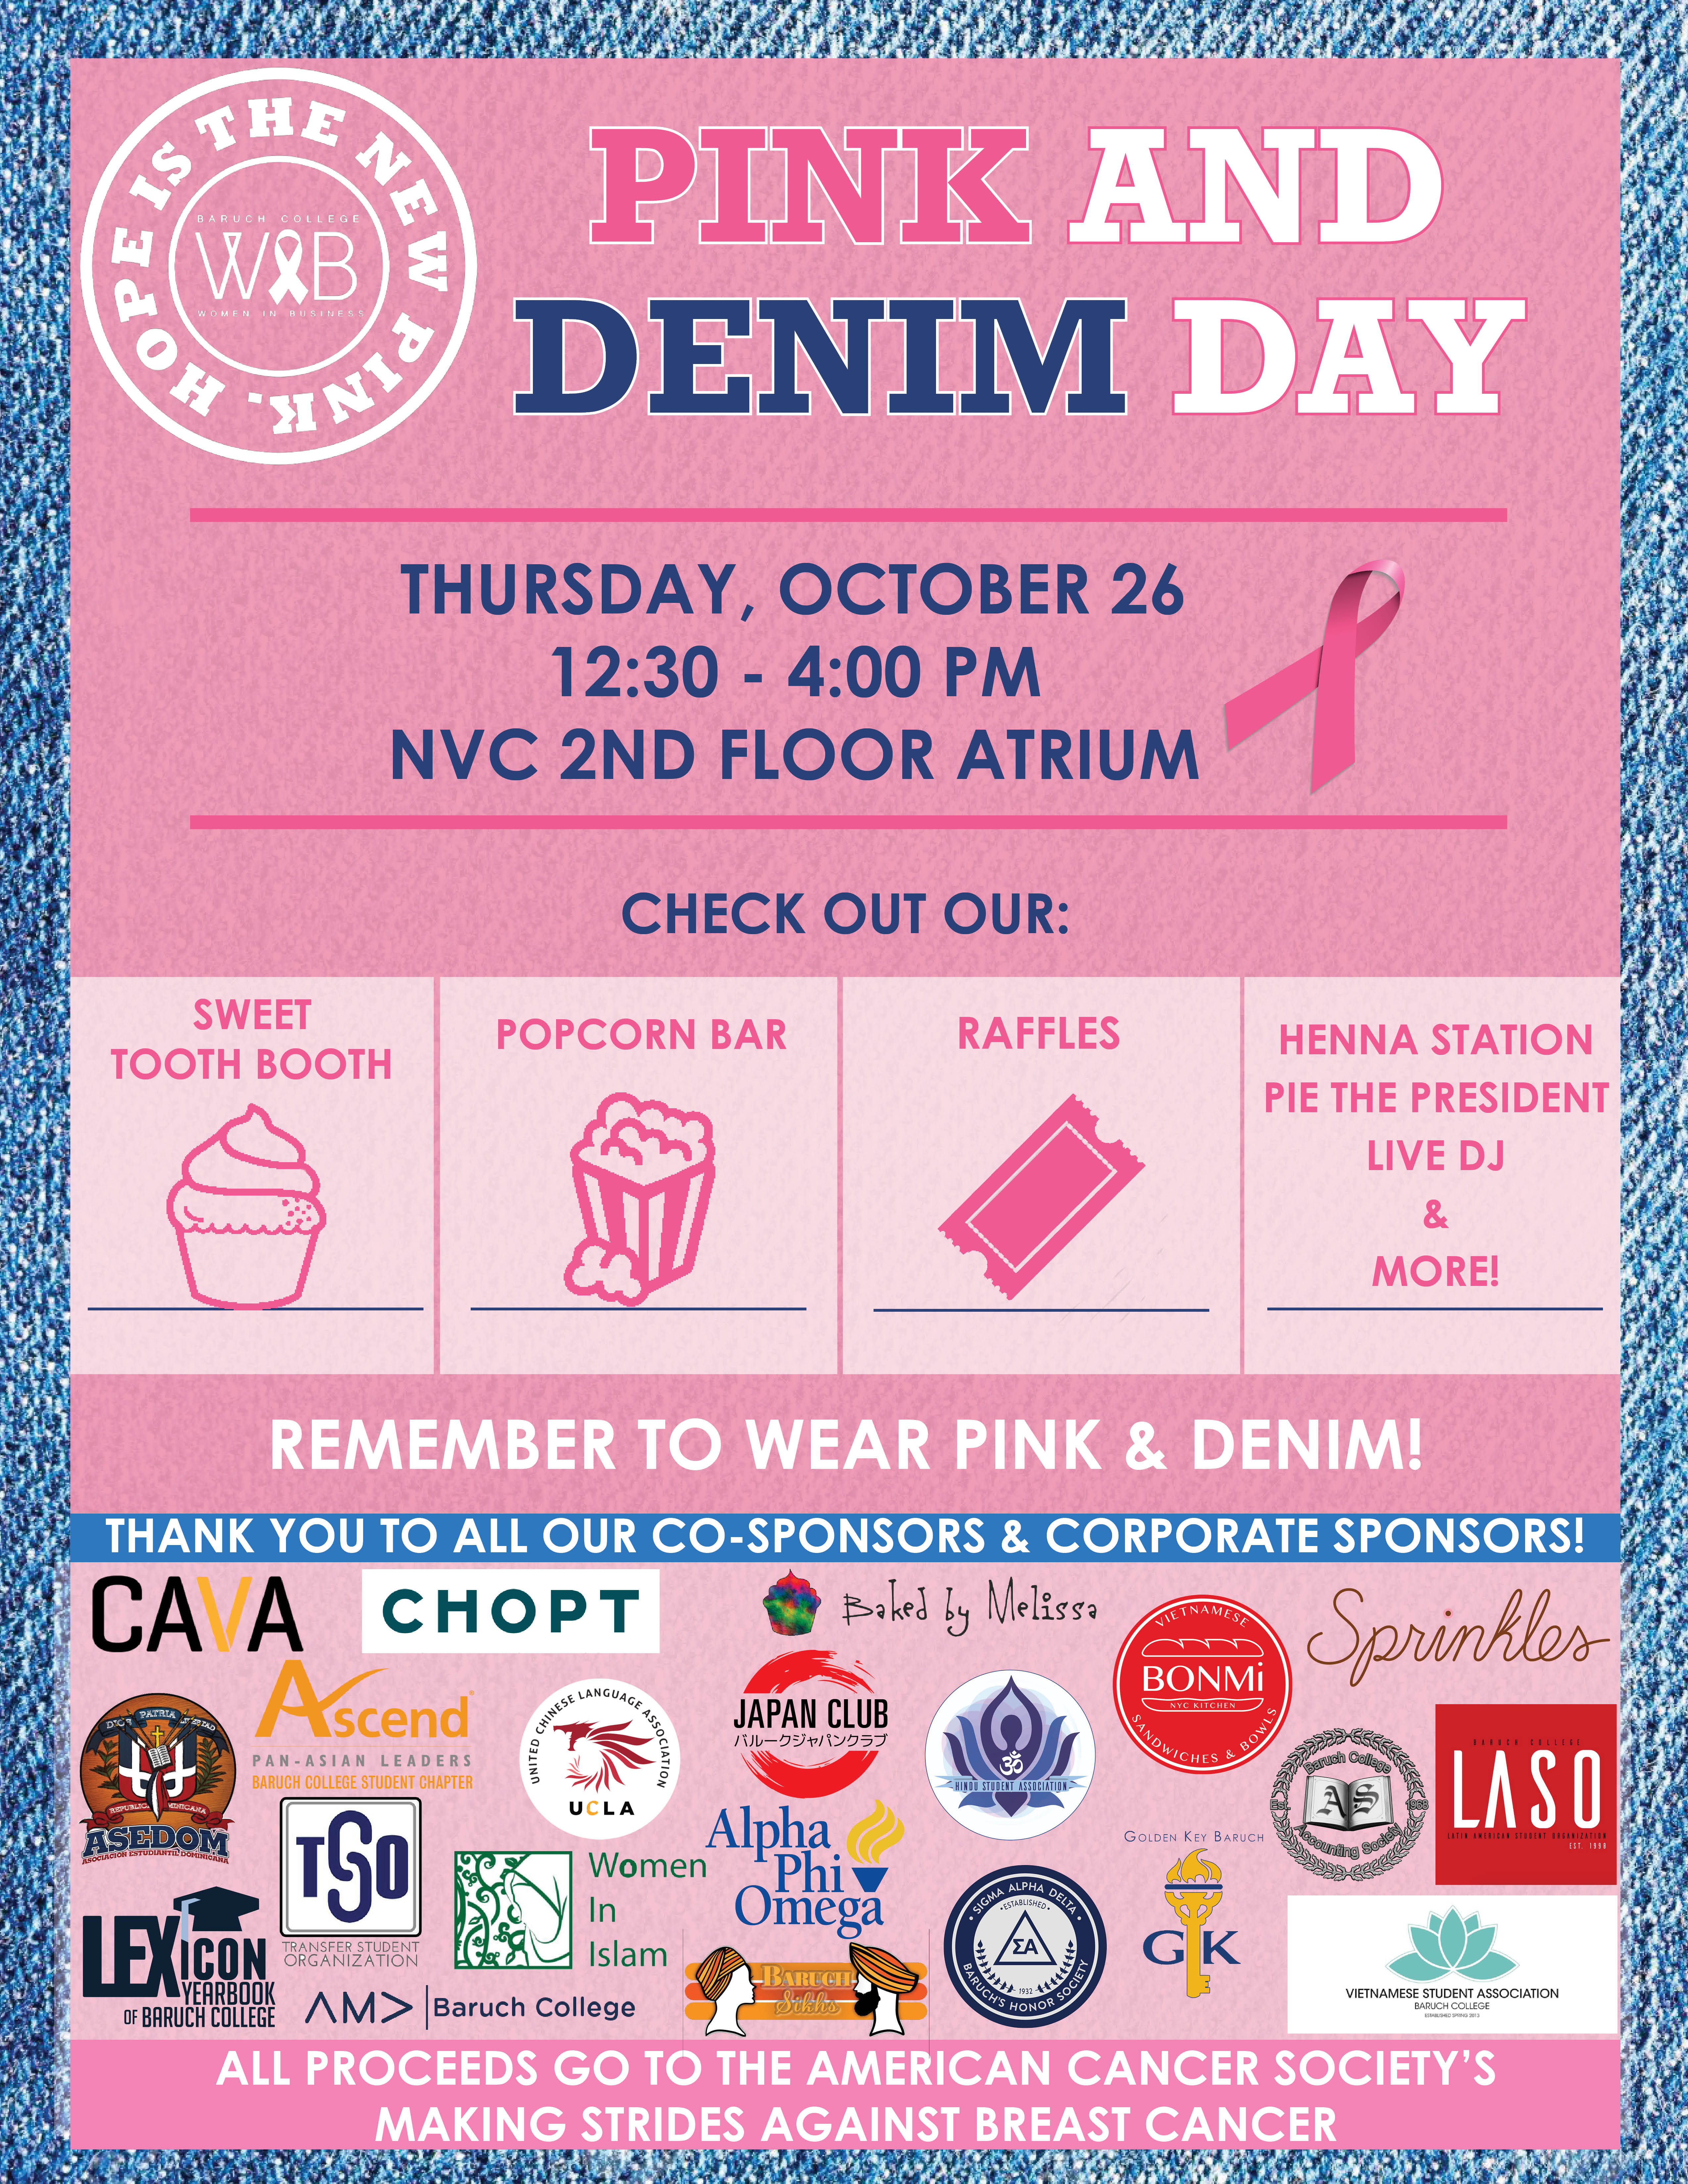 Pink and Denim Day